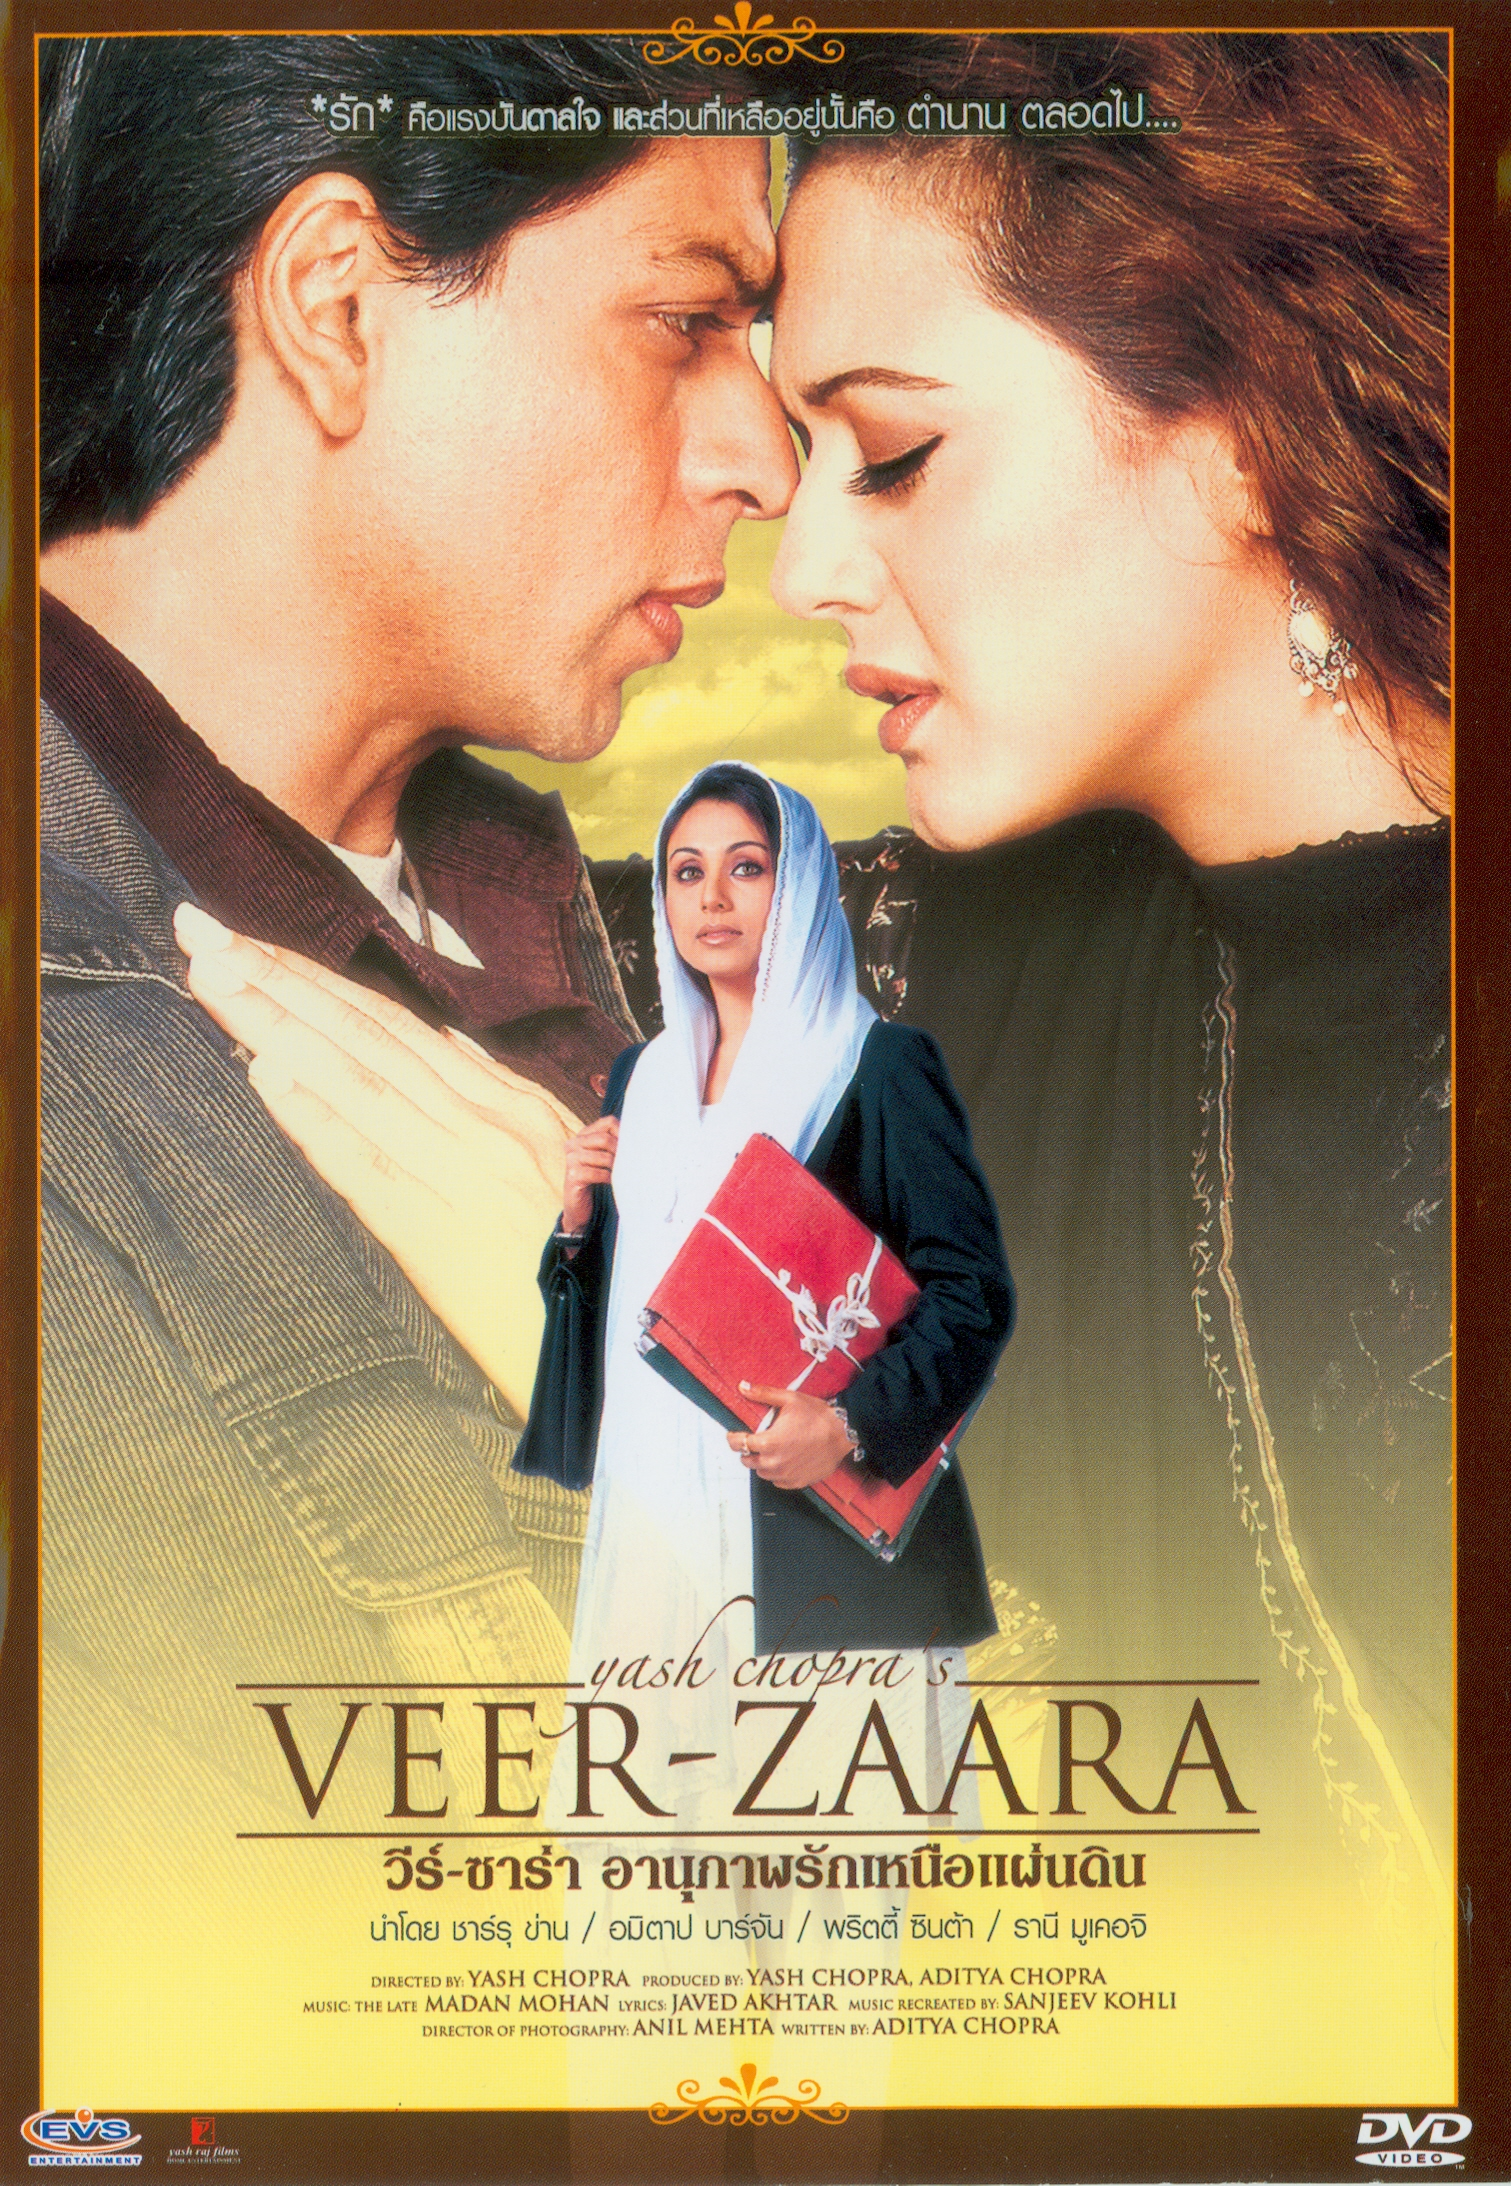 Veer-Zaara[videorecording] /Yash Raj Films ; story and screen play by Aditya Chopra; produced by Yash Chopra, Aditya Chopra ; directed by Yash Chopra||วีร์-ซาร่า อานุภาพรักเหนือแผ่นดิน